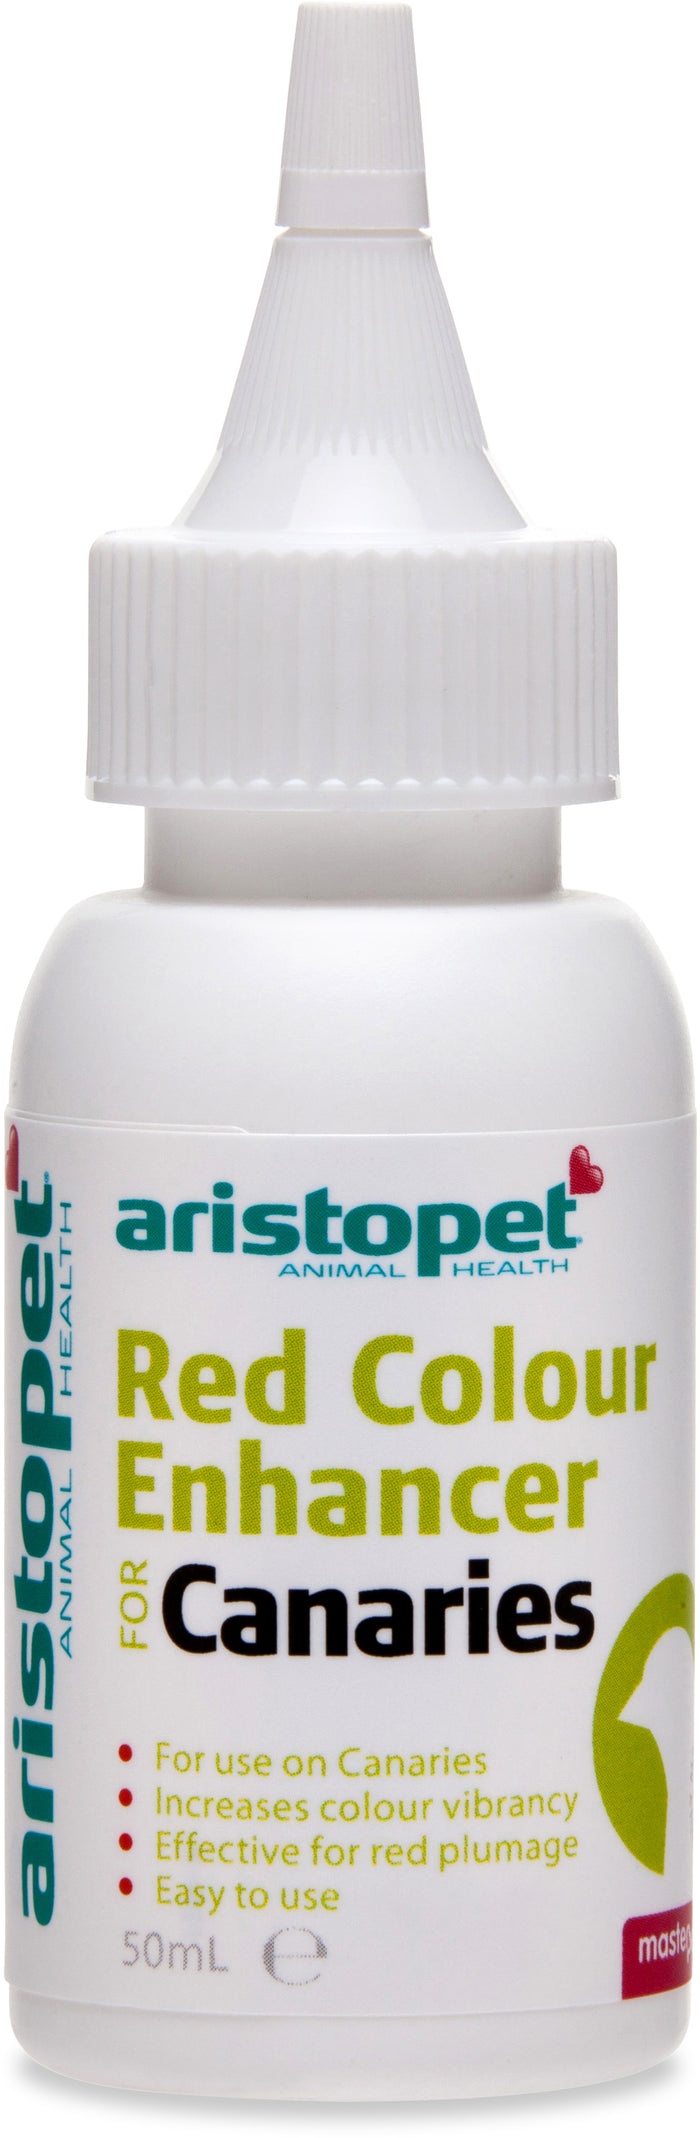 ARISTOPET RED COLOUR ENHANCER 50ML